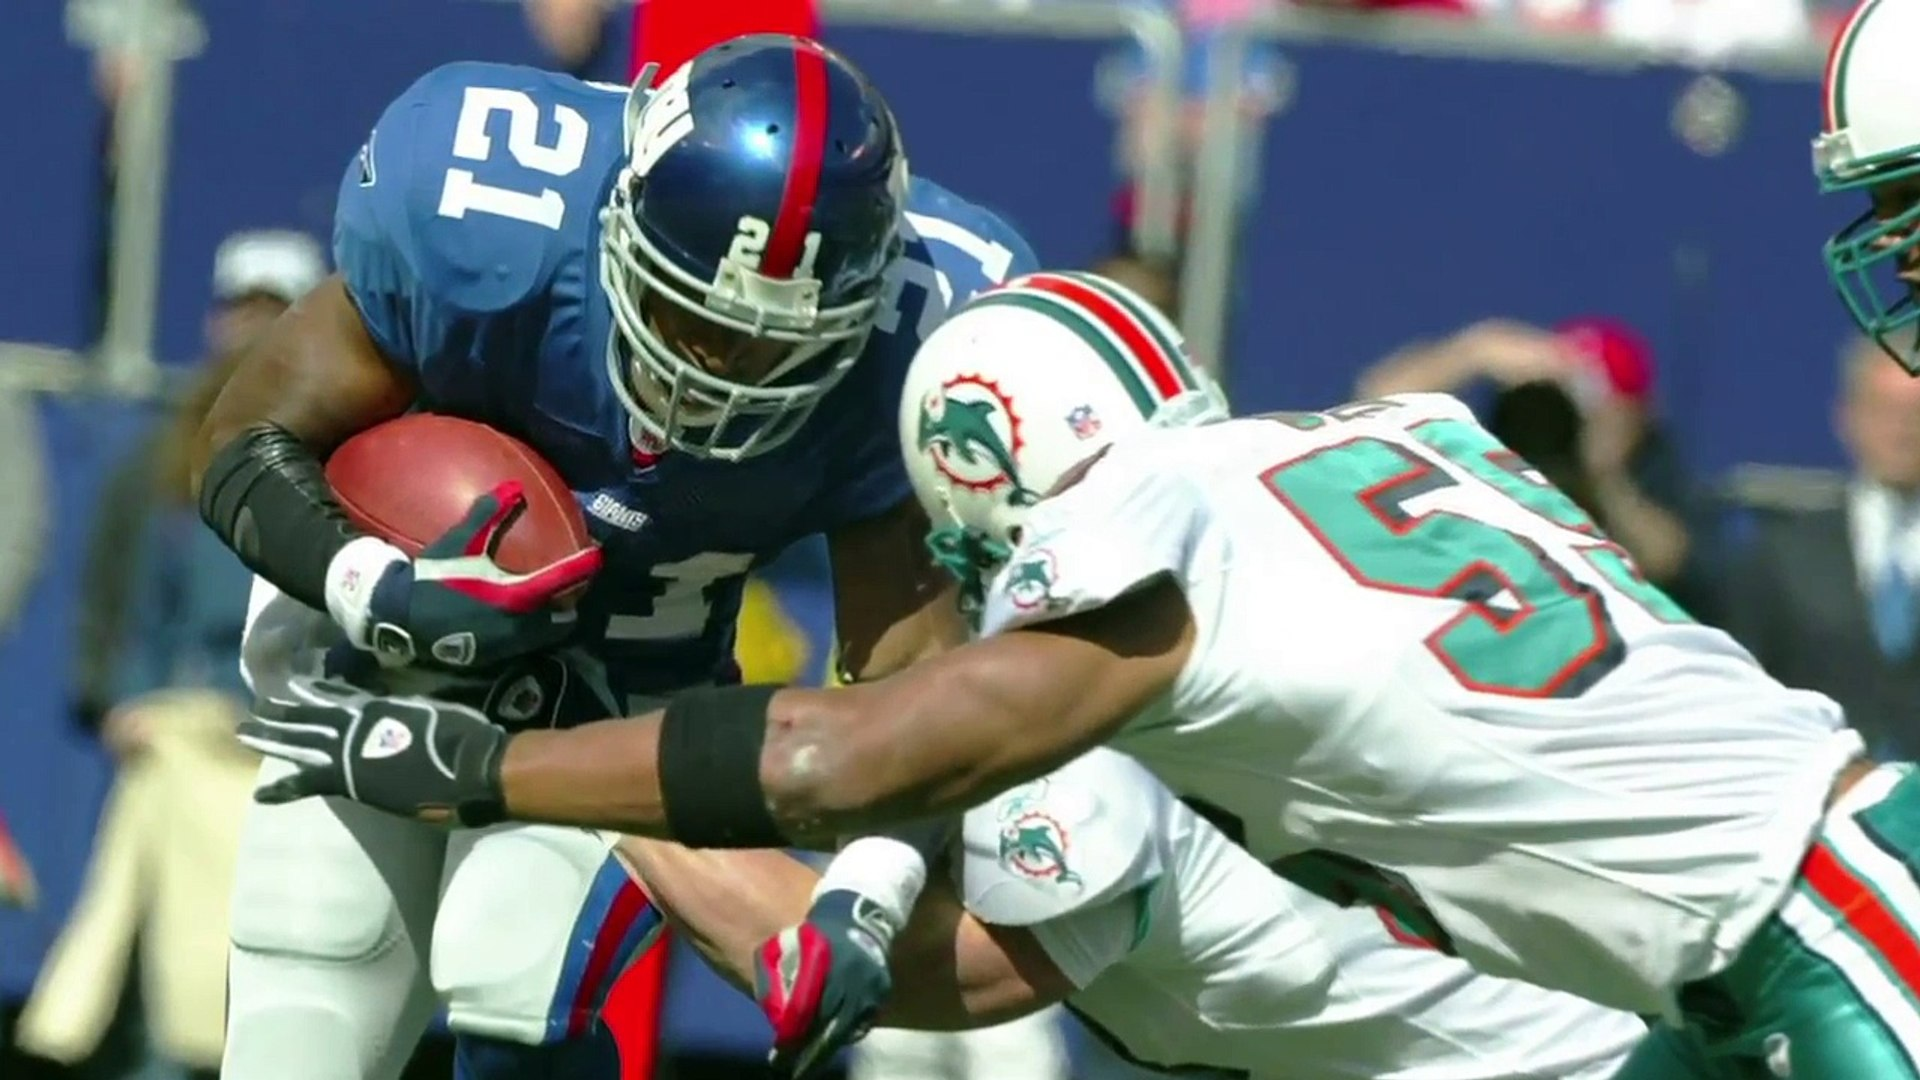 Earlier Signs of Concussion Effects in NFL Players' Brains